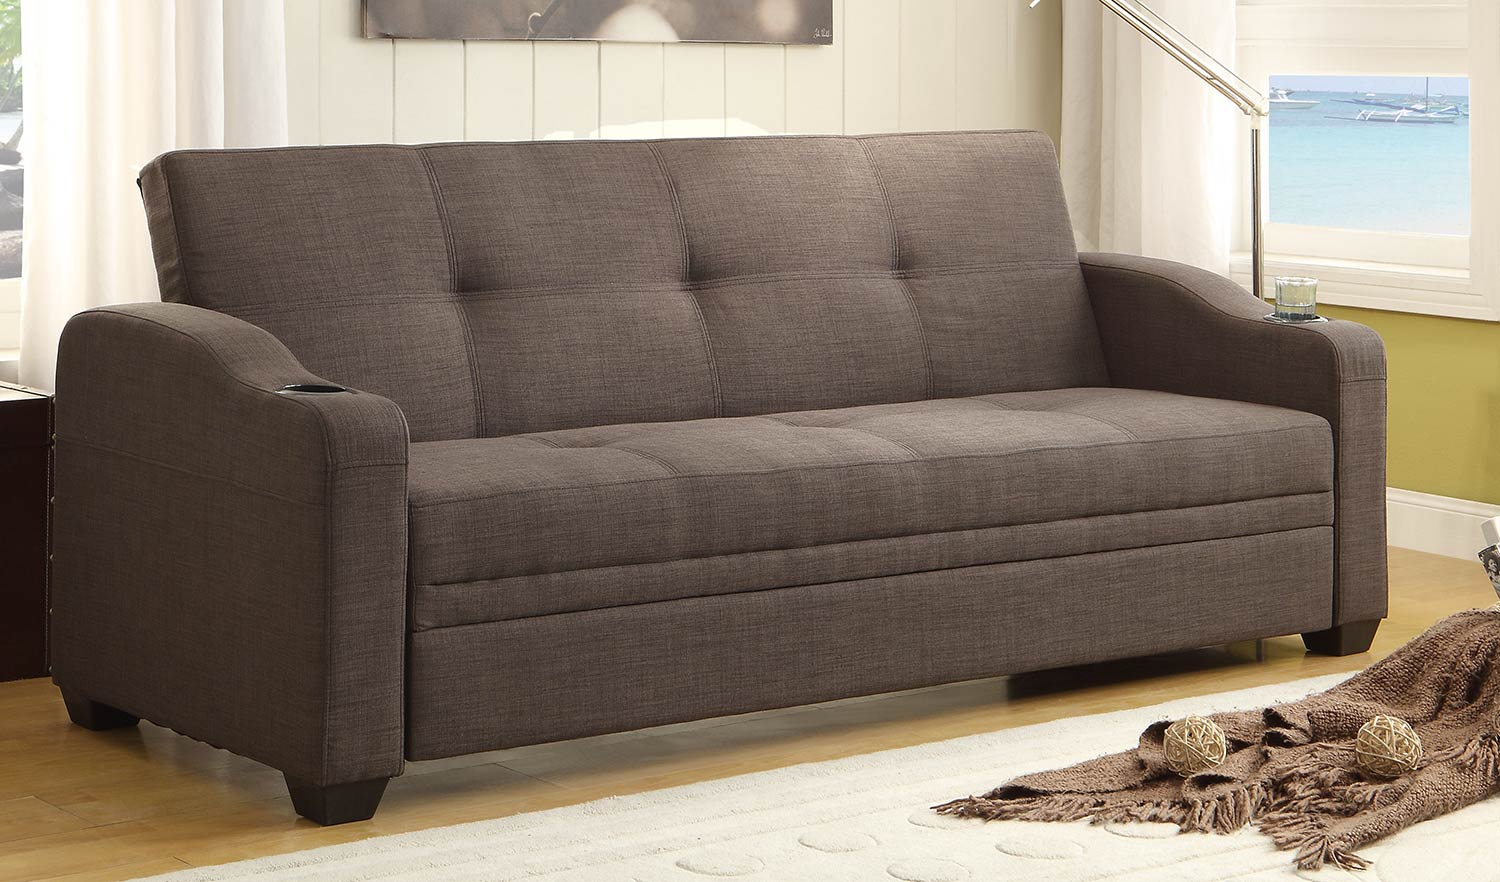 Homelegance Caffrey Elegant Lounger Sofa Bed Dark Grey